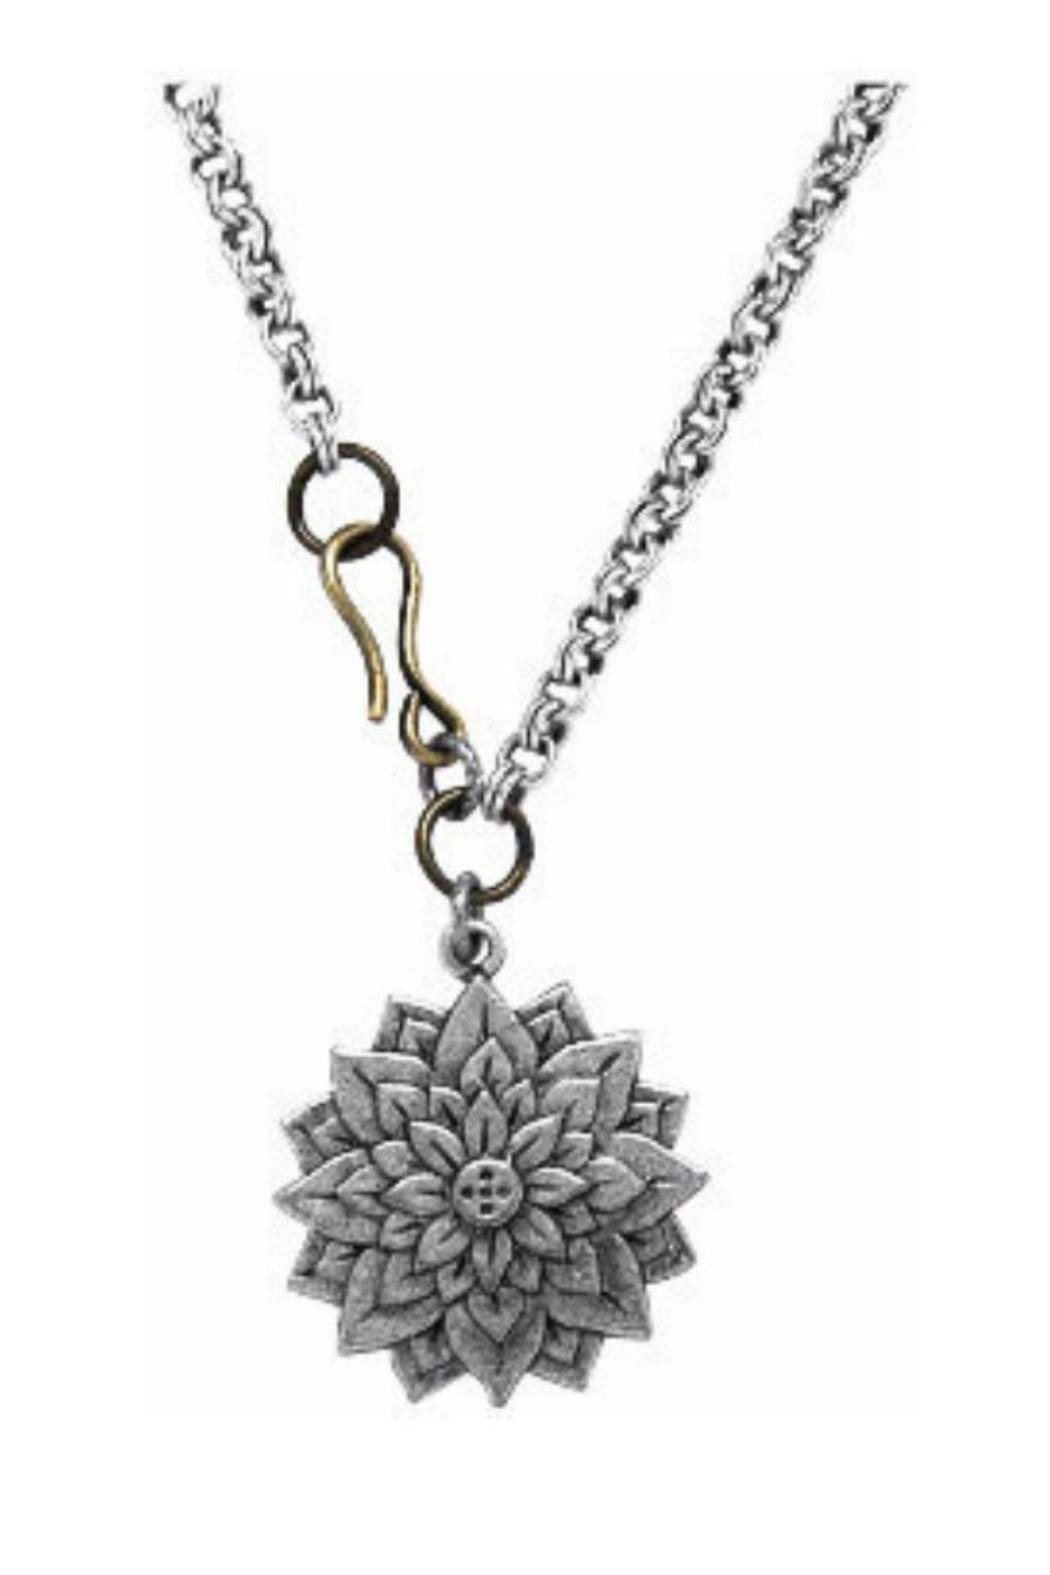 Luca danni lotus flower pendant from new york by lets accessorize luca danni lotus flower pendant front cropped image izmirmasajfo